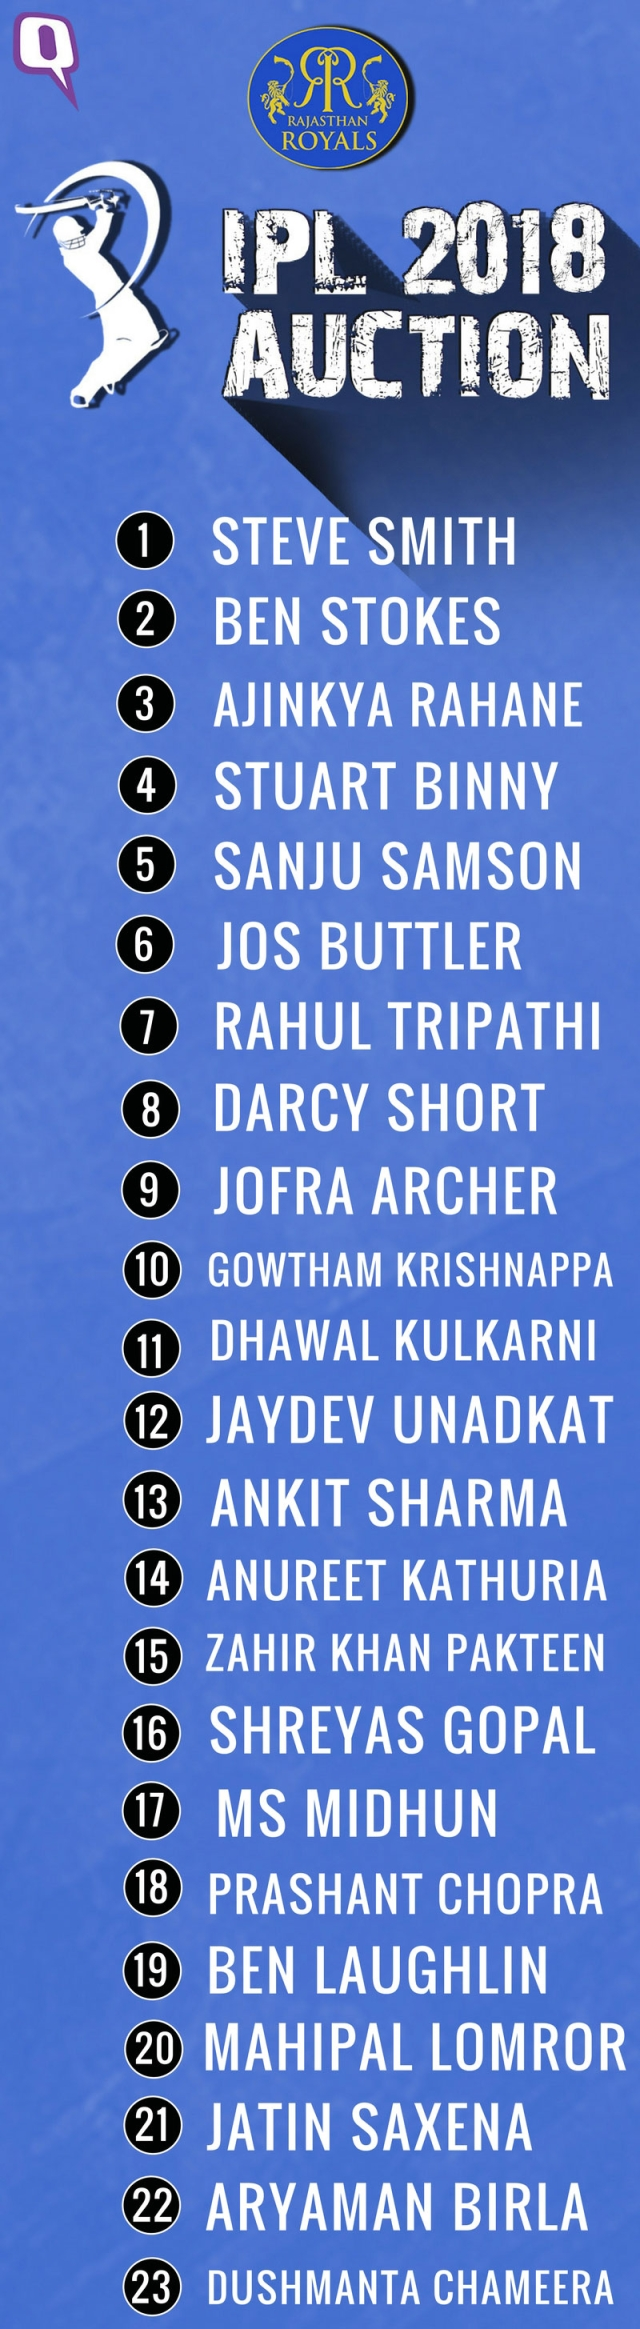 IPL 2018: Here is the final Rajasthan Royals team.